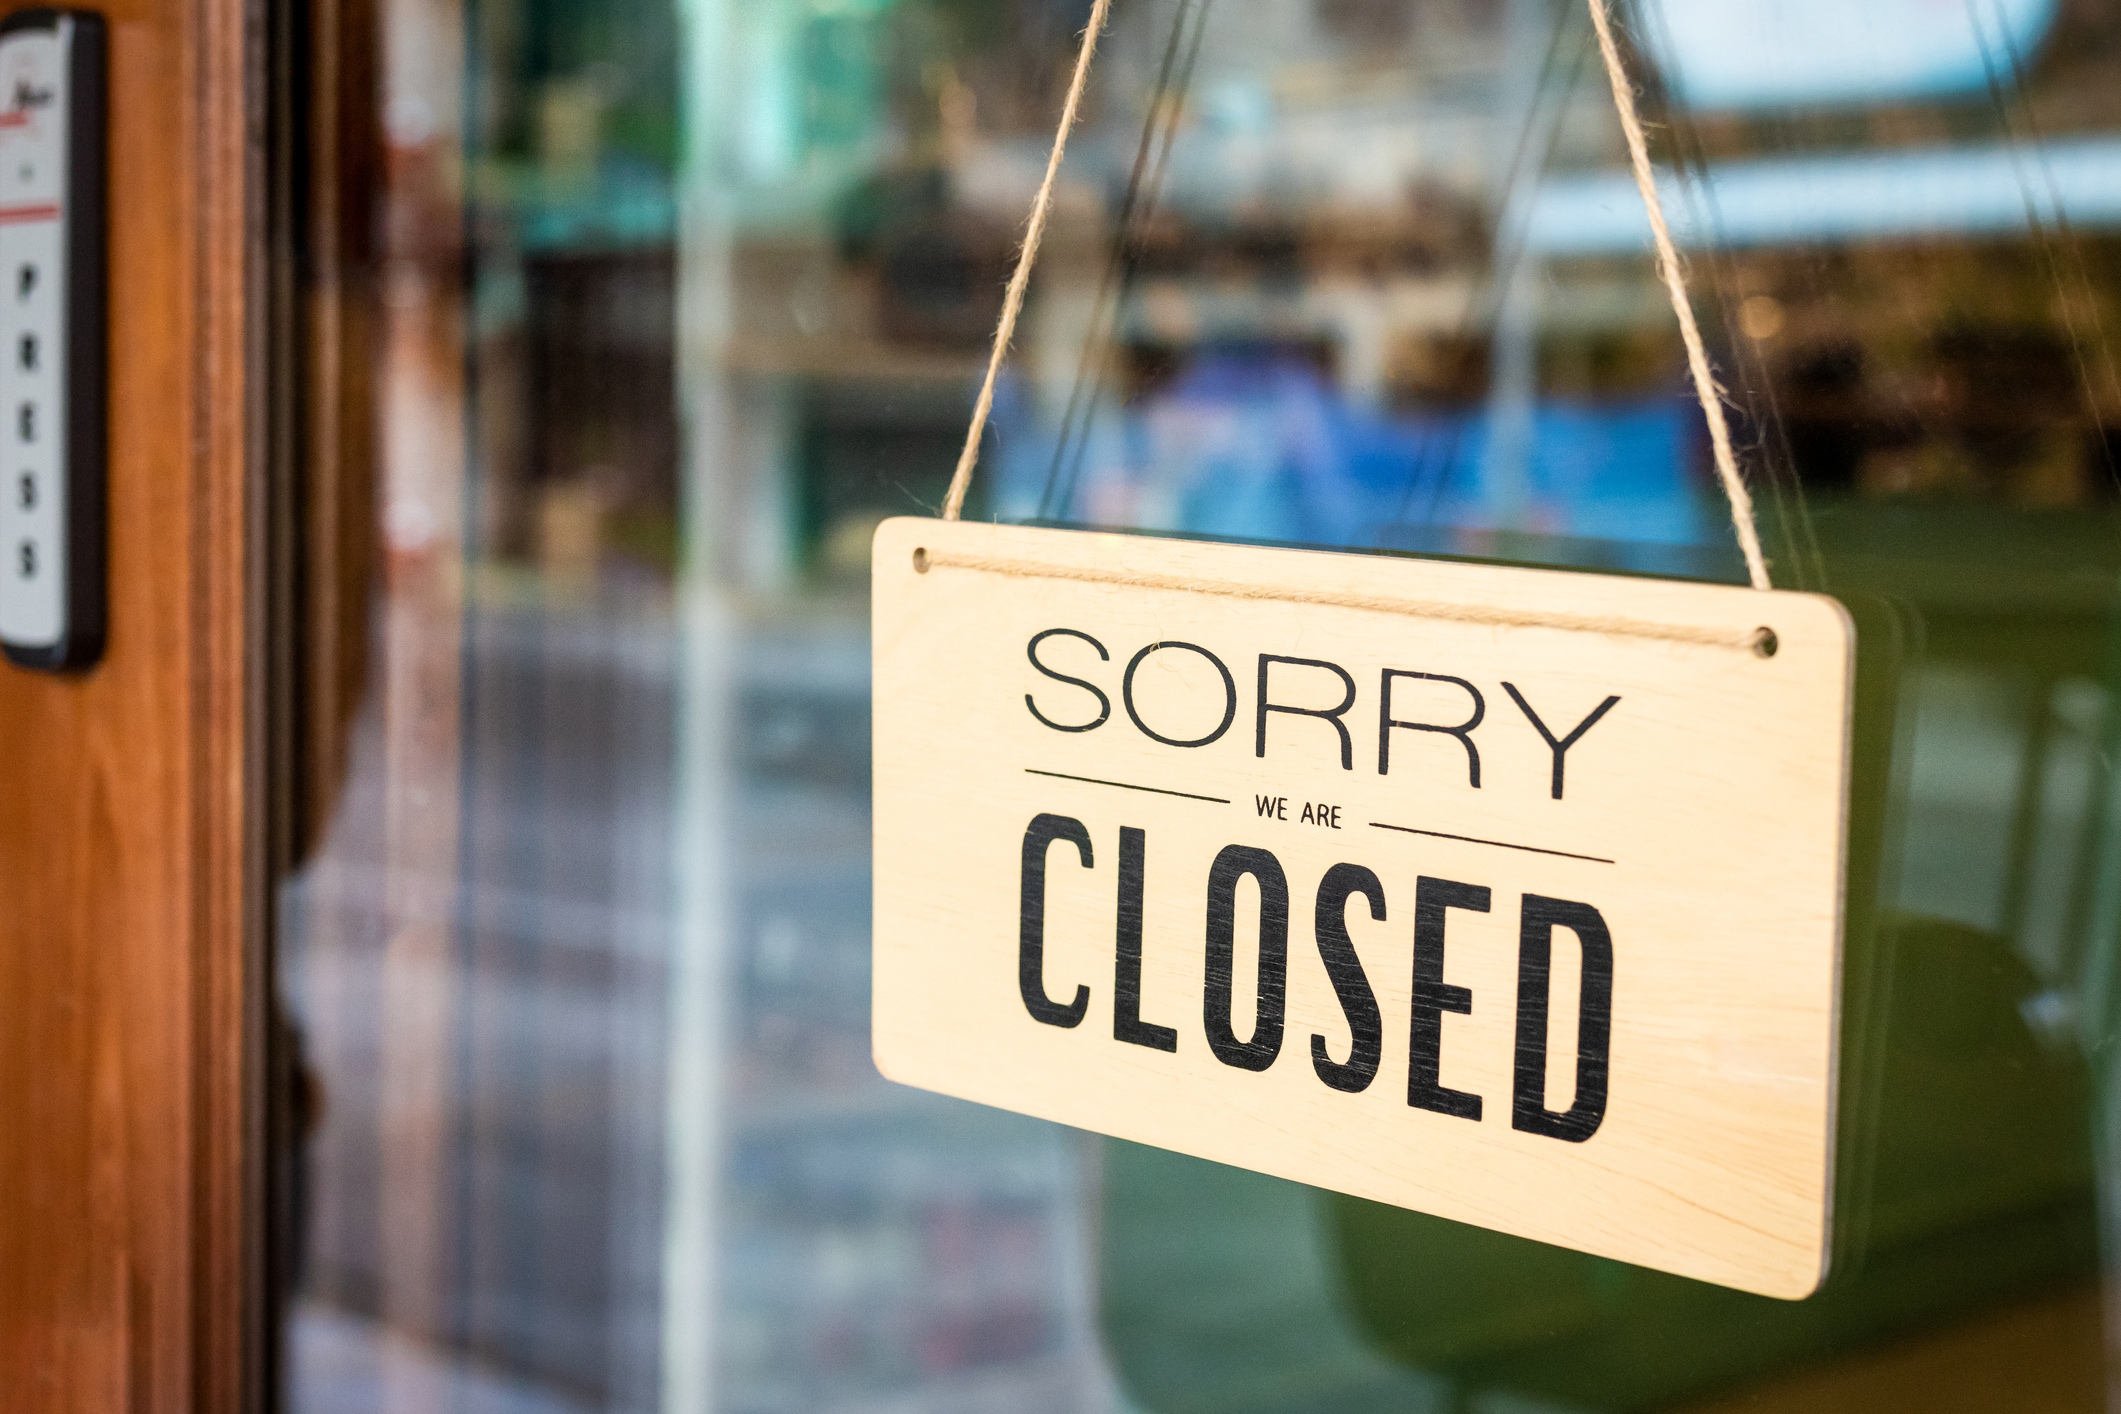 Restaurants and Bars Ordered to Close in 5 Counties including Allegheny